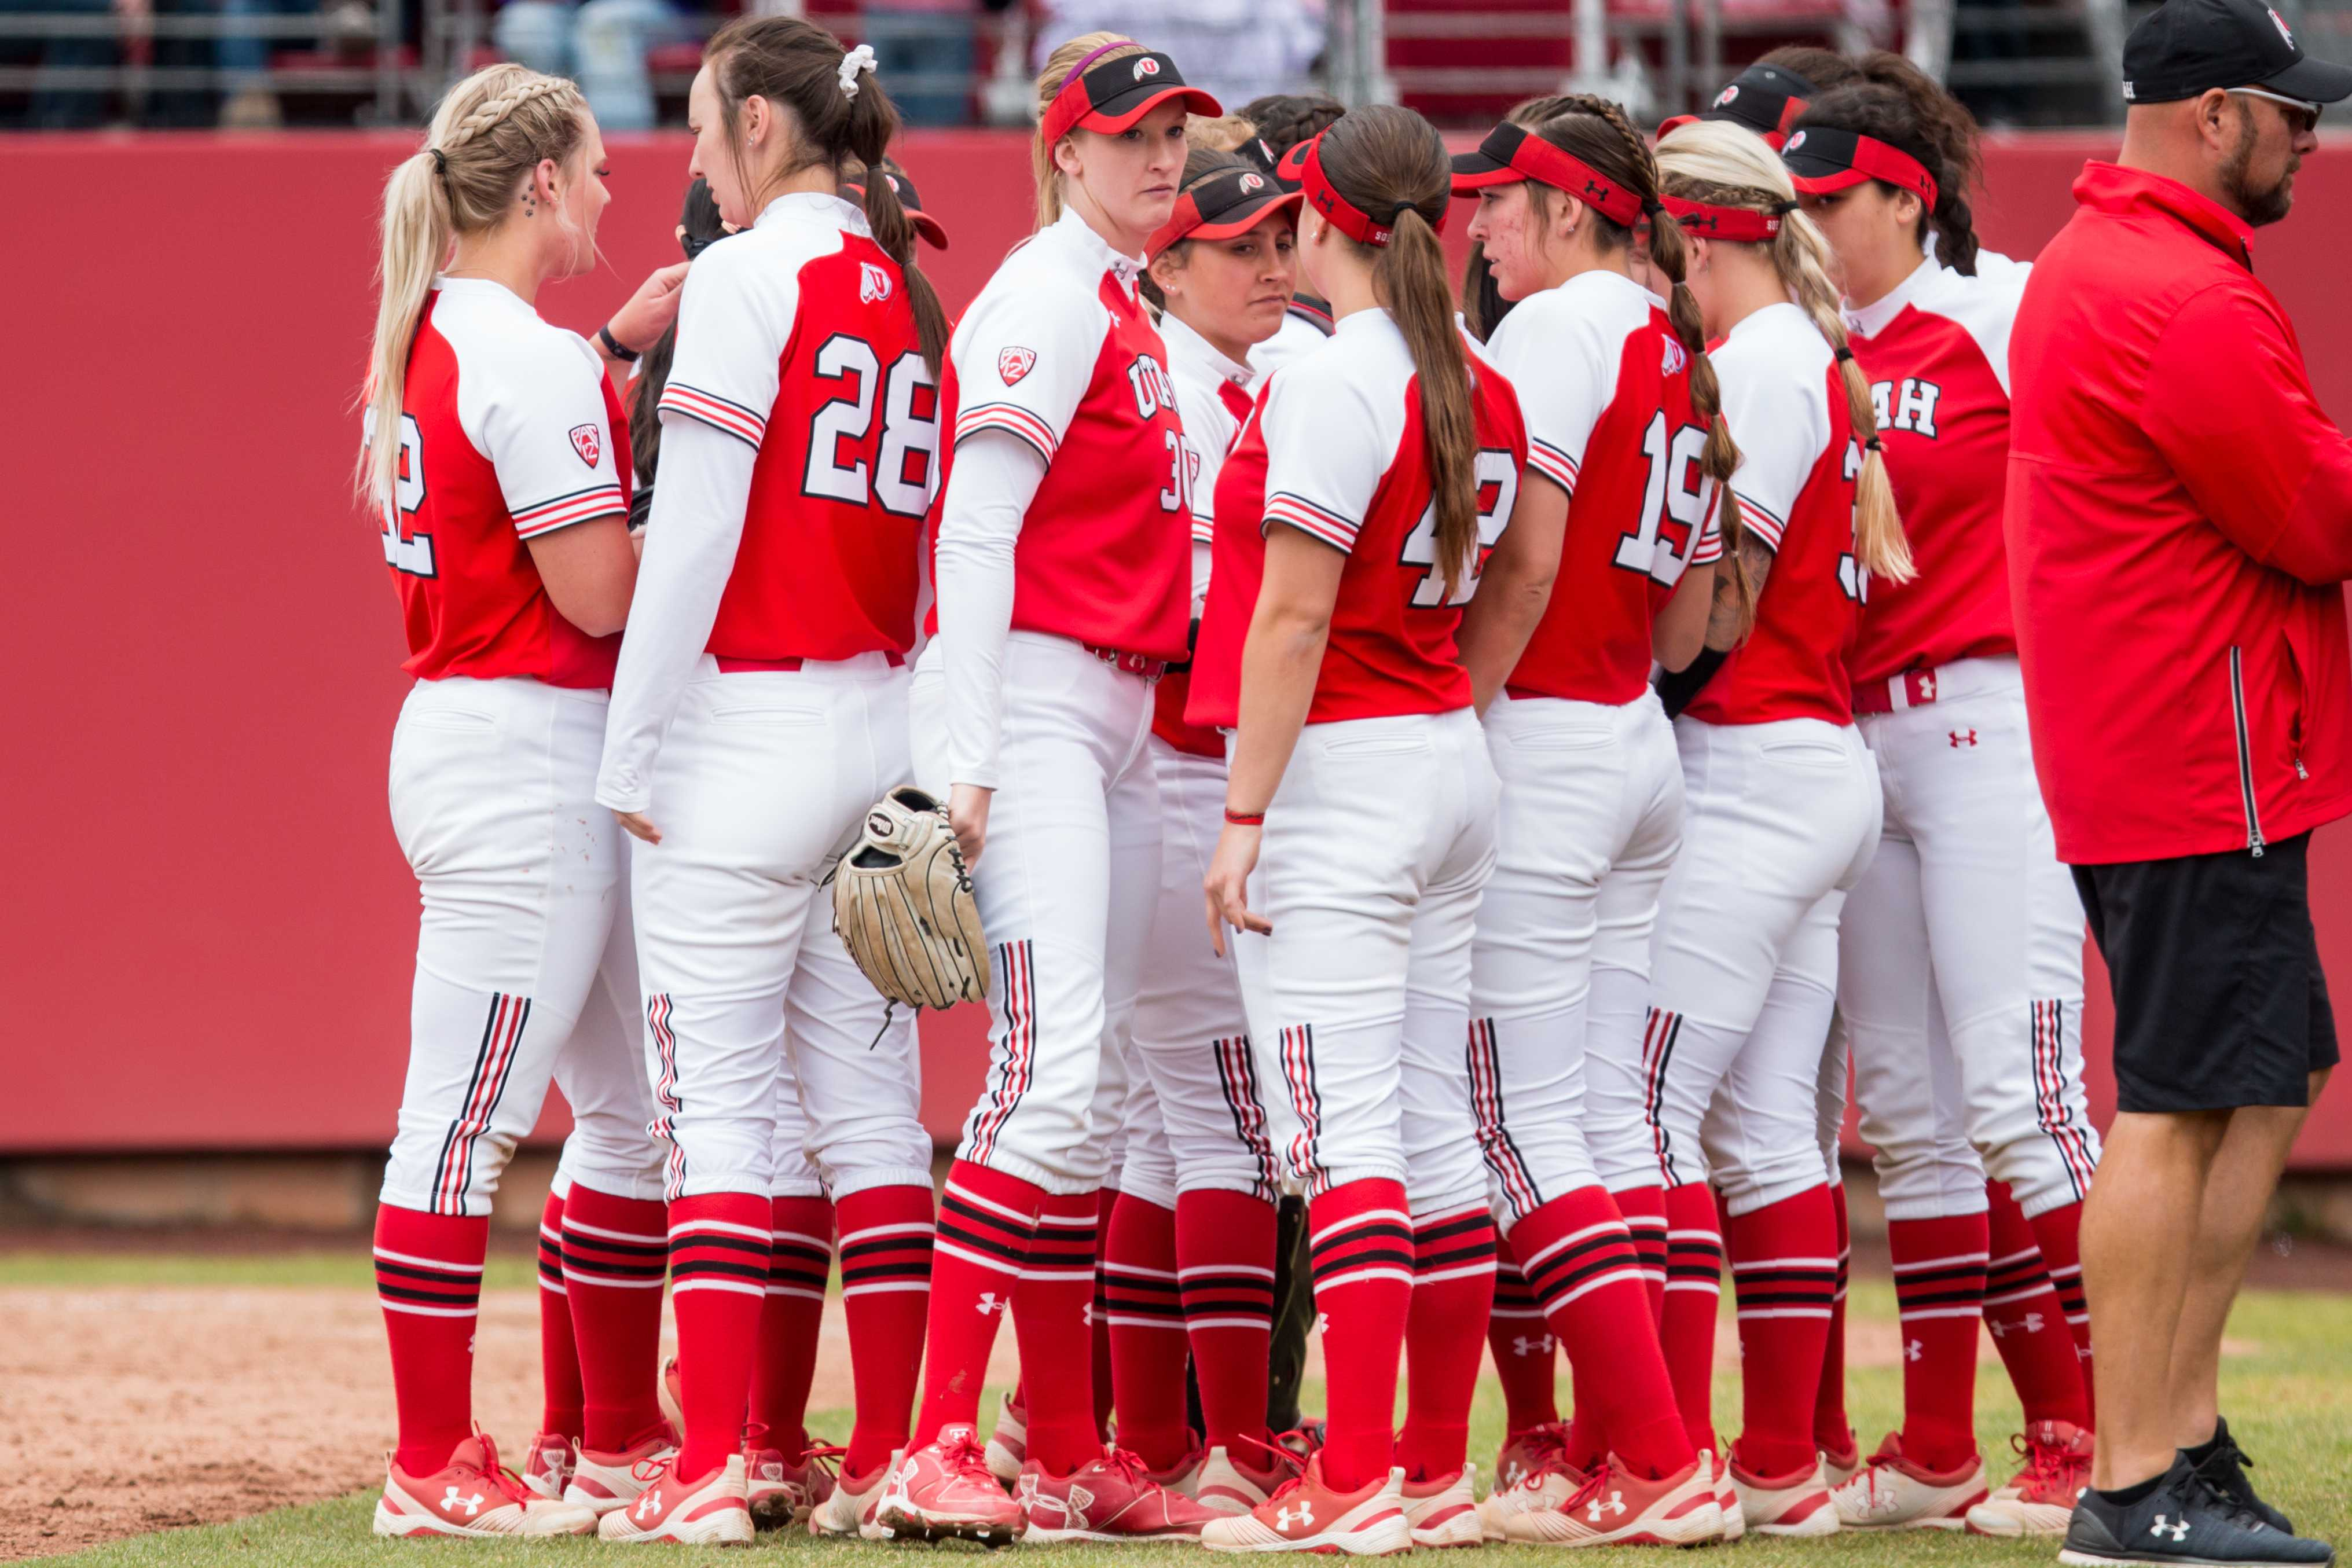 The University of Utah Softball Team huddled up in an NCAA Softball game vs. Arizona at Dumke Family Softball Field in Salt Lake City, UT on Saturday April 06, 2019.  (Photo by Curtis Lin | Daily Utah Chronicle)